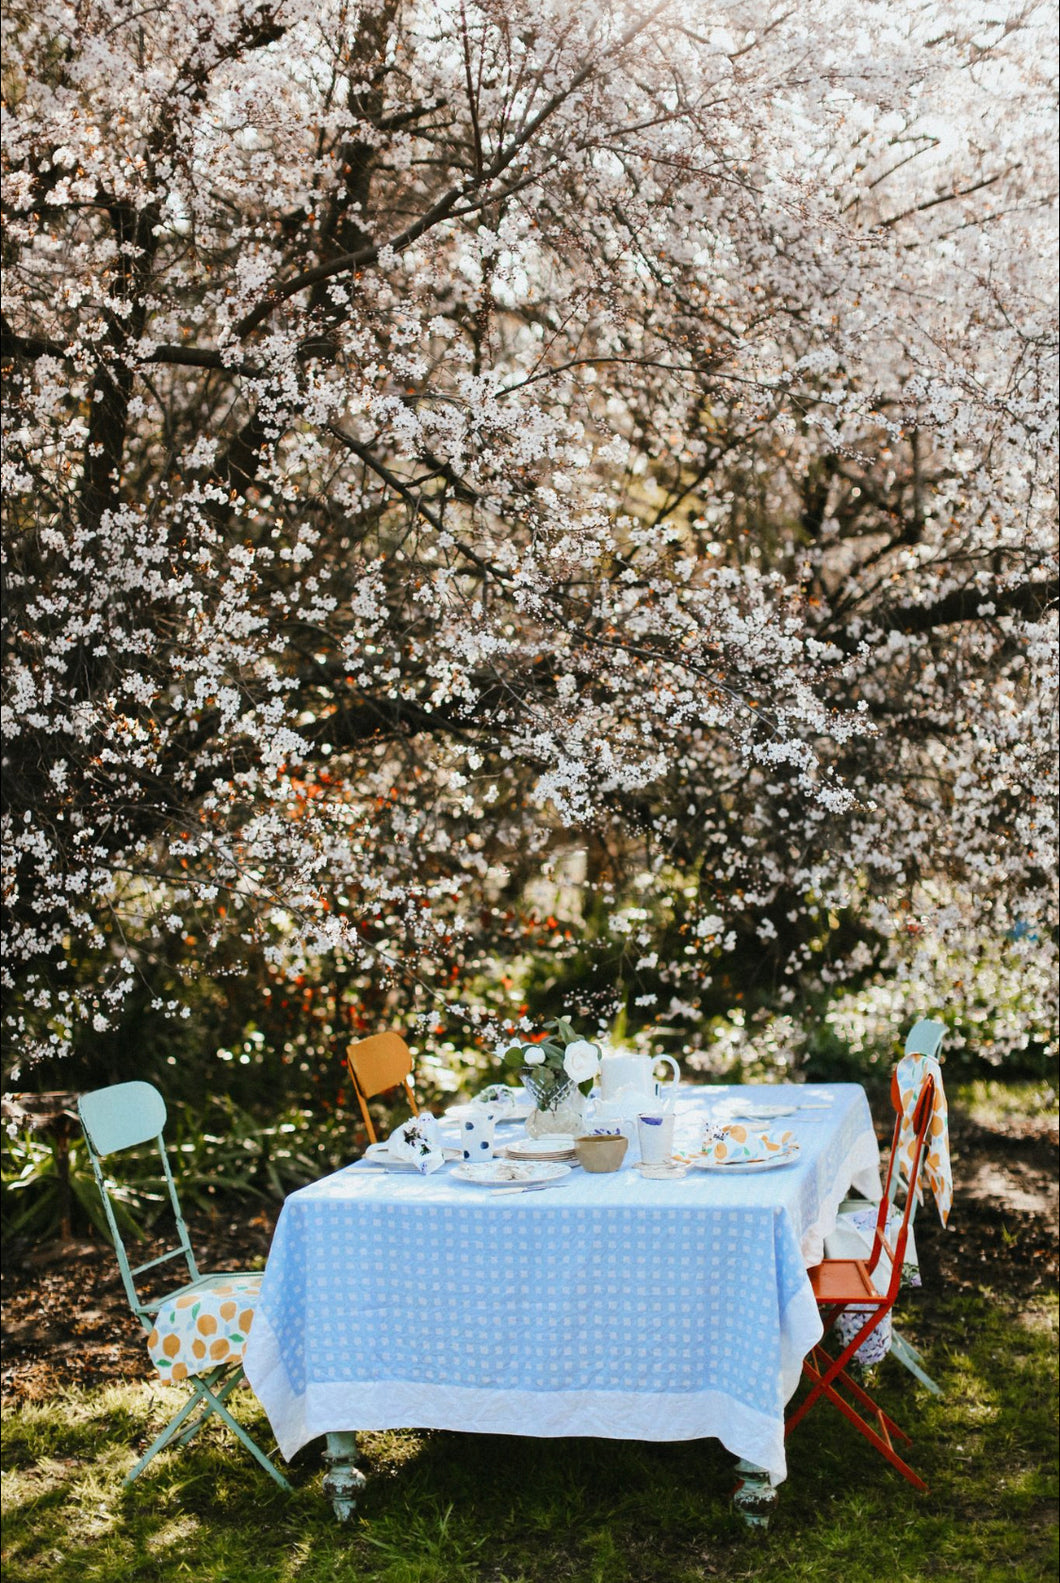 Tablecloth | Gingham Chambray